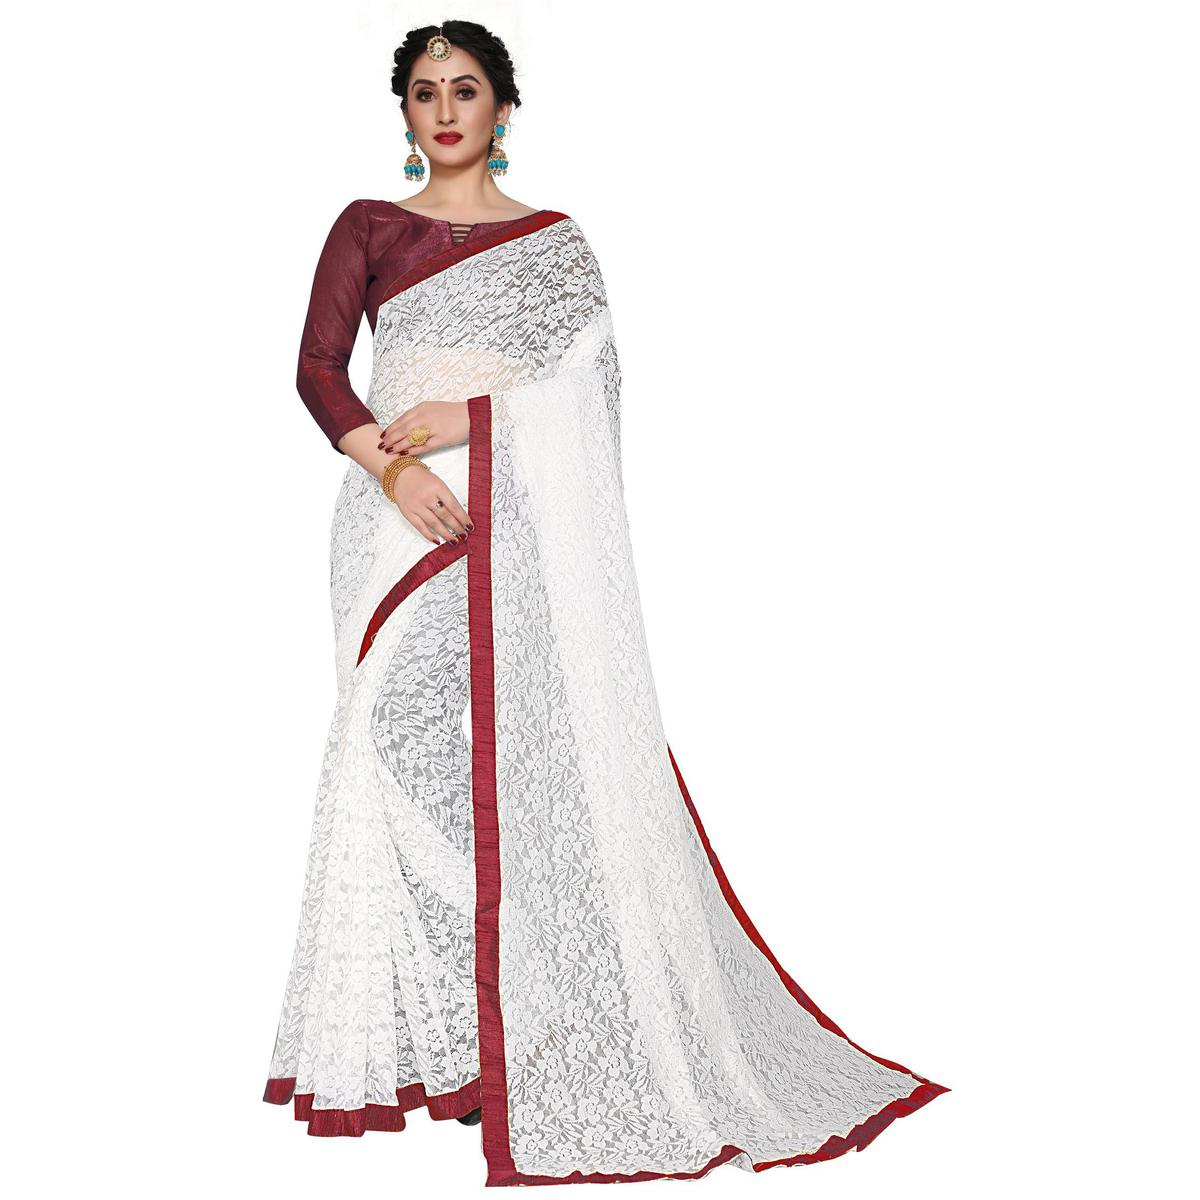 SLE - White and Maroon Net Lace Saree With Blouse